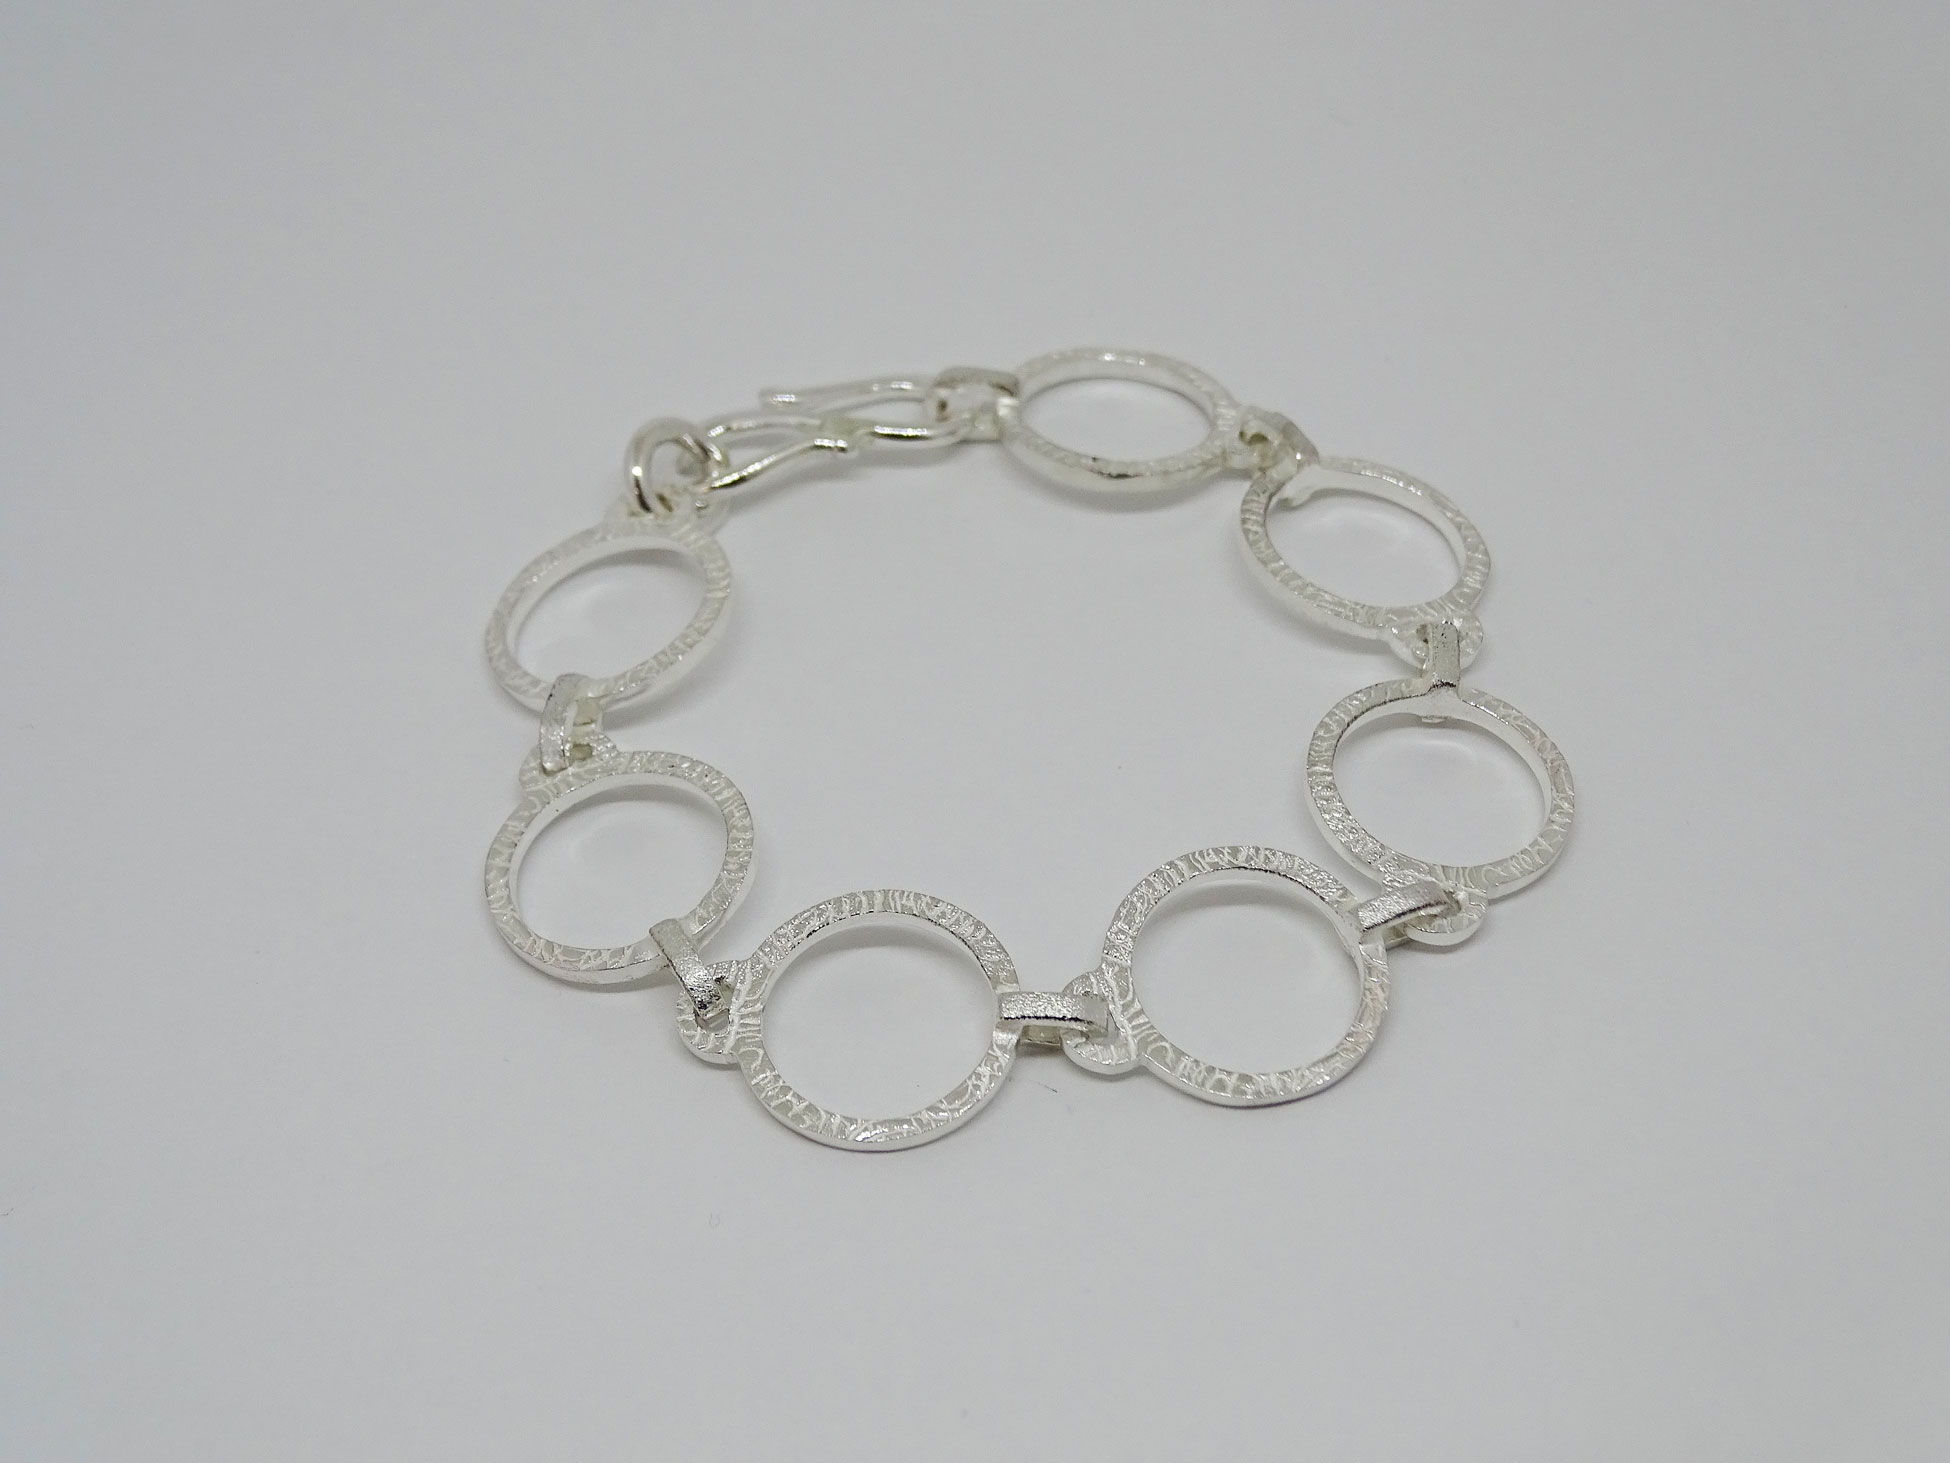 Two Waves Bracelet NU Goldsmith